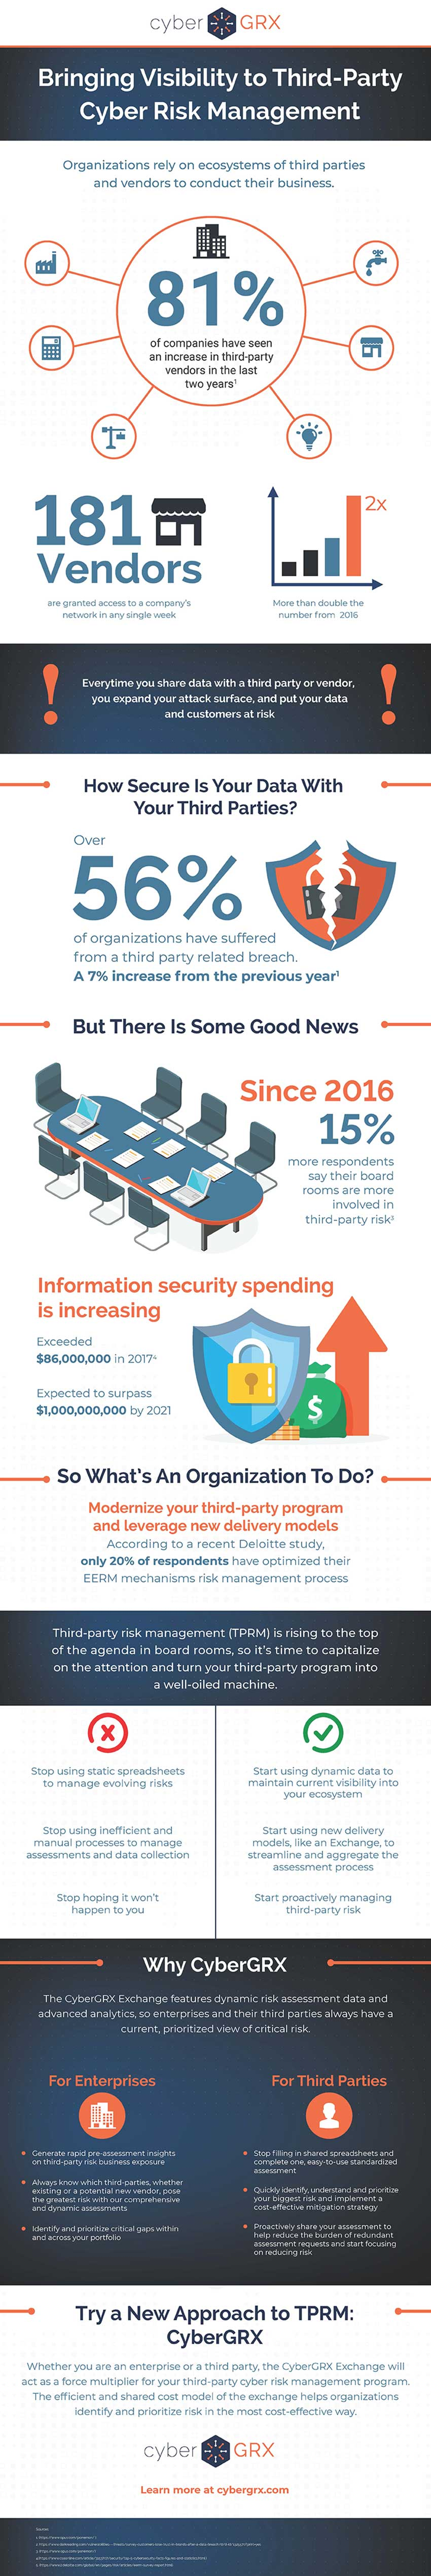 Bringing Visibility to Third-Party Cyber Risk Management Infographic